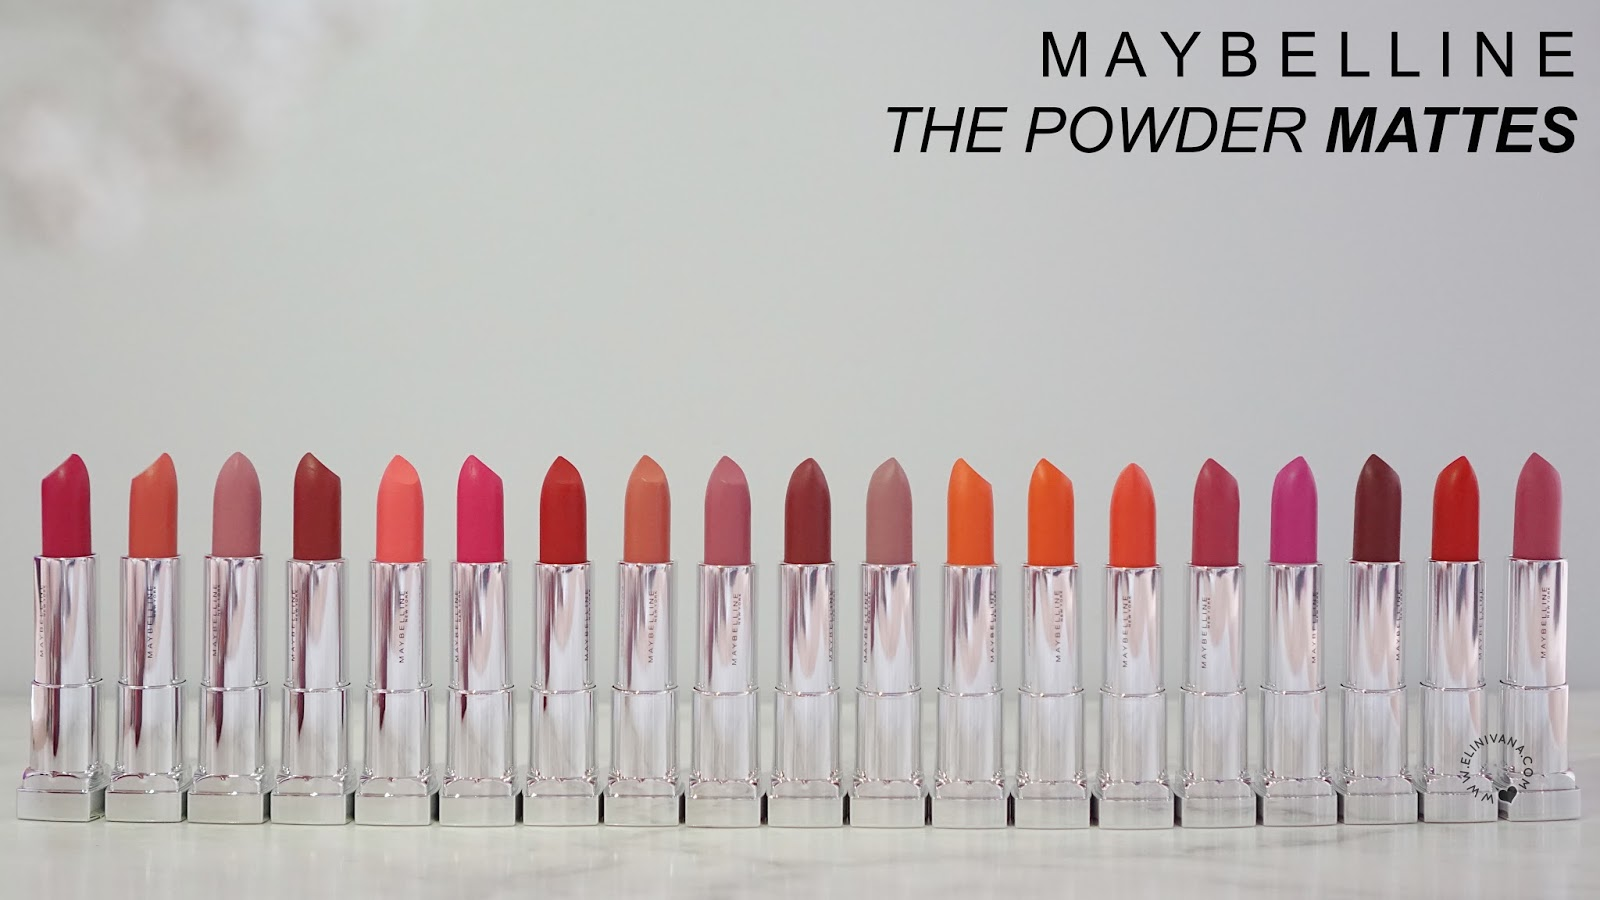 27 Maybelline The Powder Mattes Full Swatches And Review